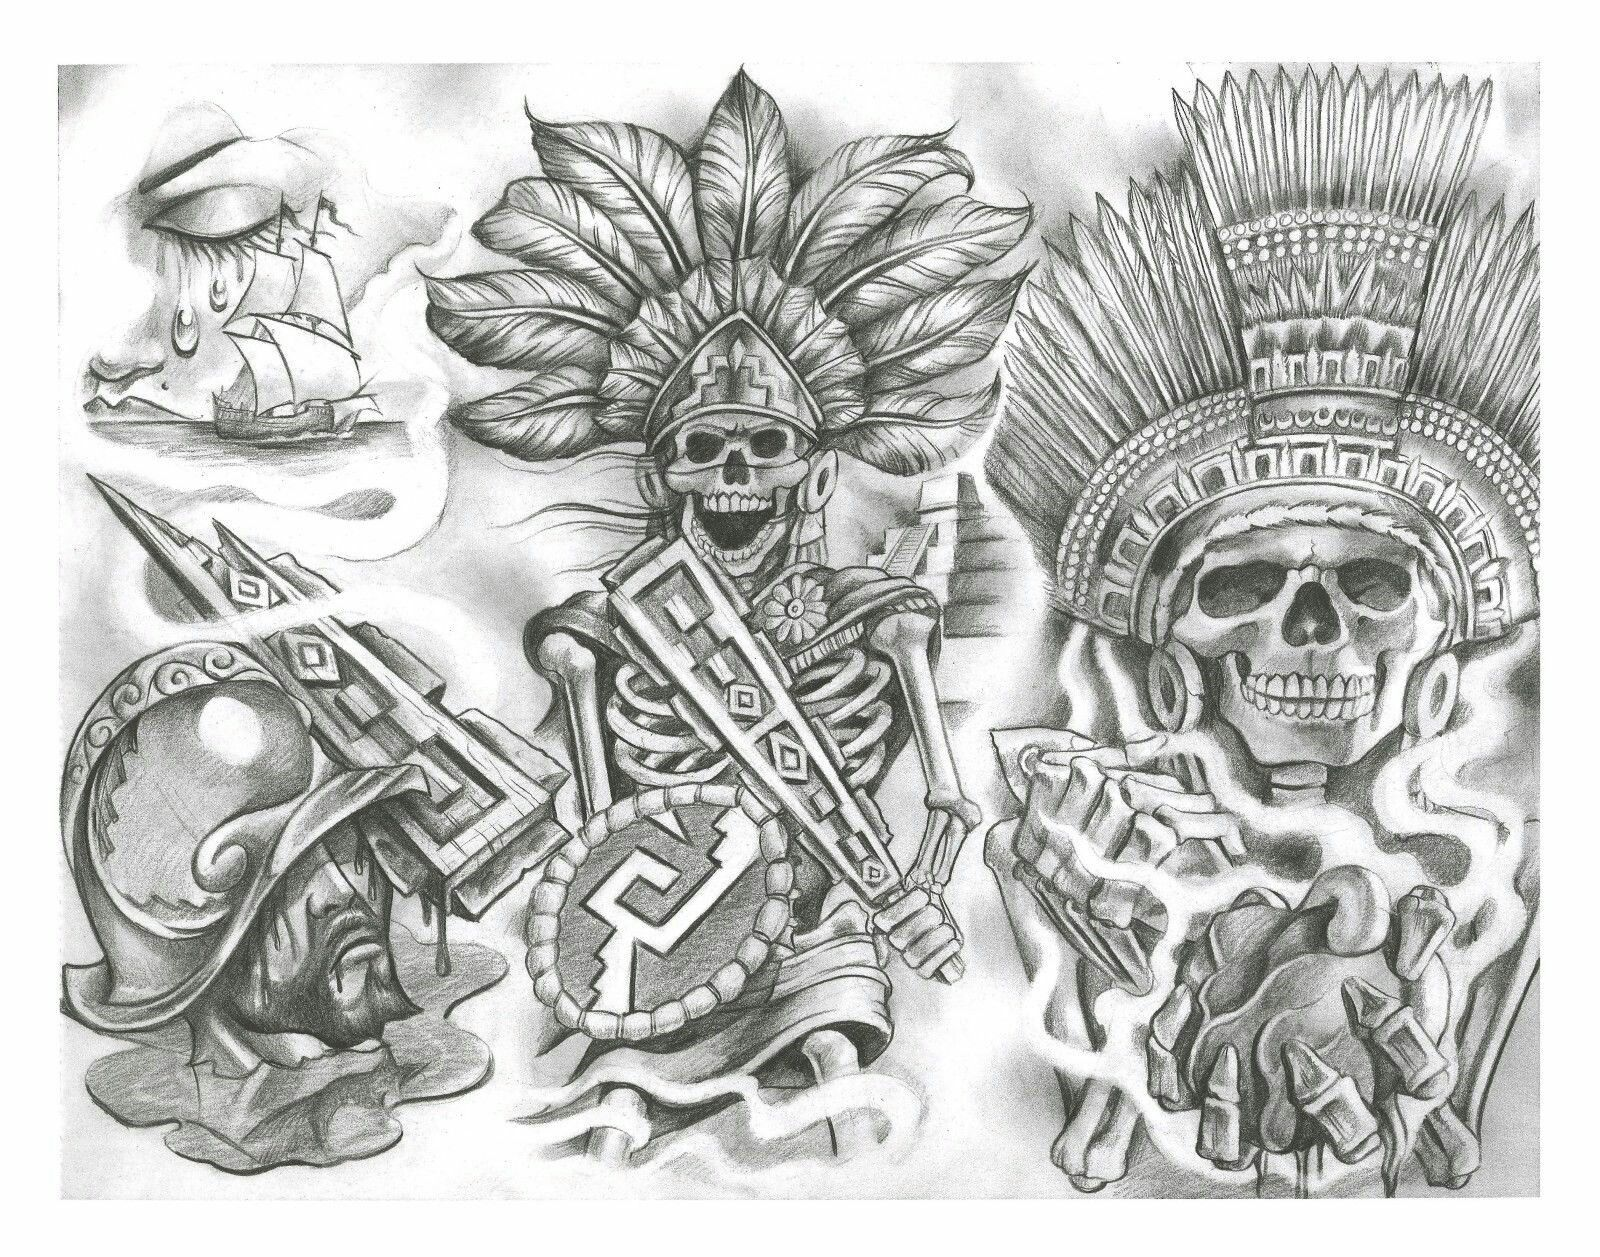 flash tattoo chicano tattoos aztec designs azteca drawings grey skull mexican sheets arte dvd cd sleeve symbols tatoos line patterns